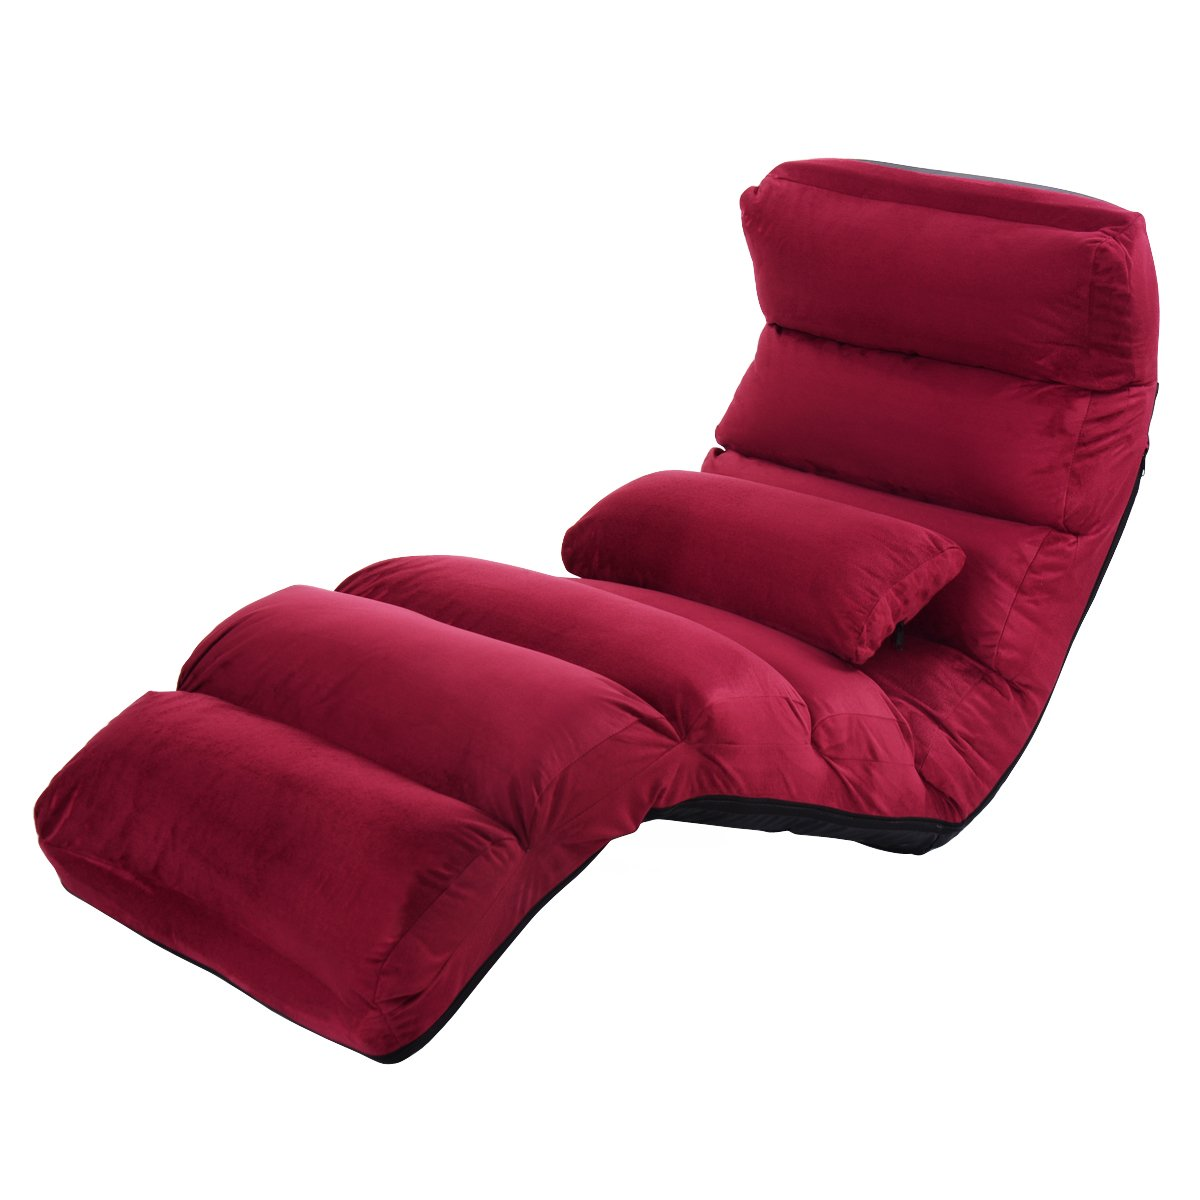 Sofa Chair. Amazon.com: Giantex Folding Lazy Sofa Chair Stylish Couch Beds  Lounge